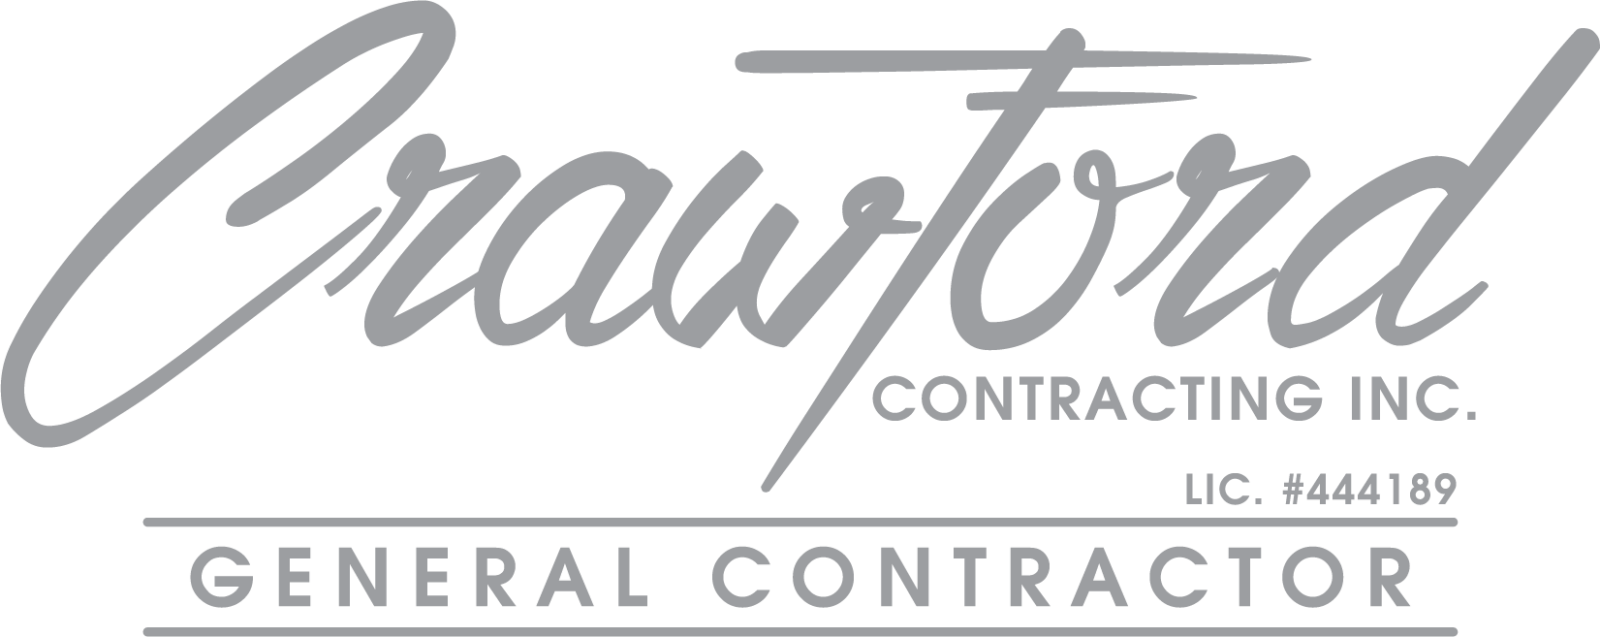 Crawford Contracting Vinyl Windows San Diego